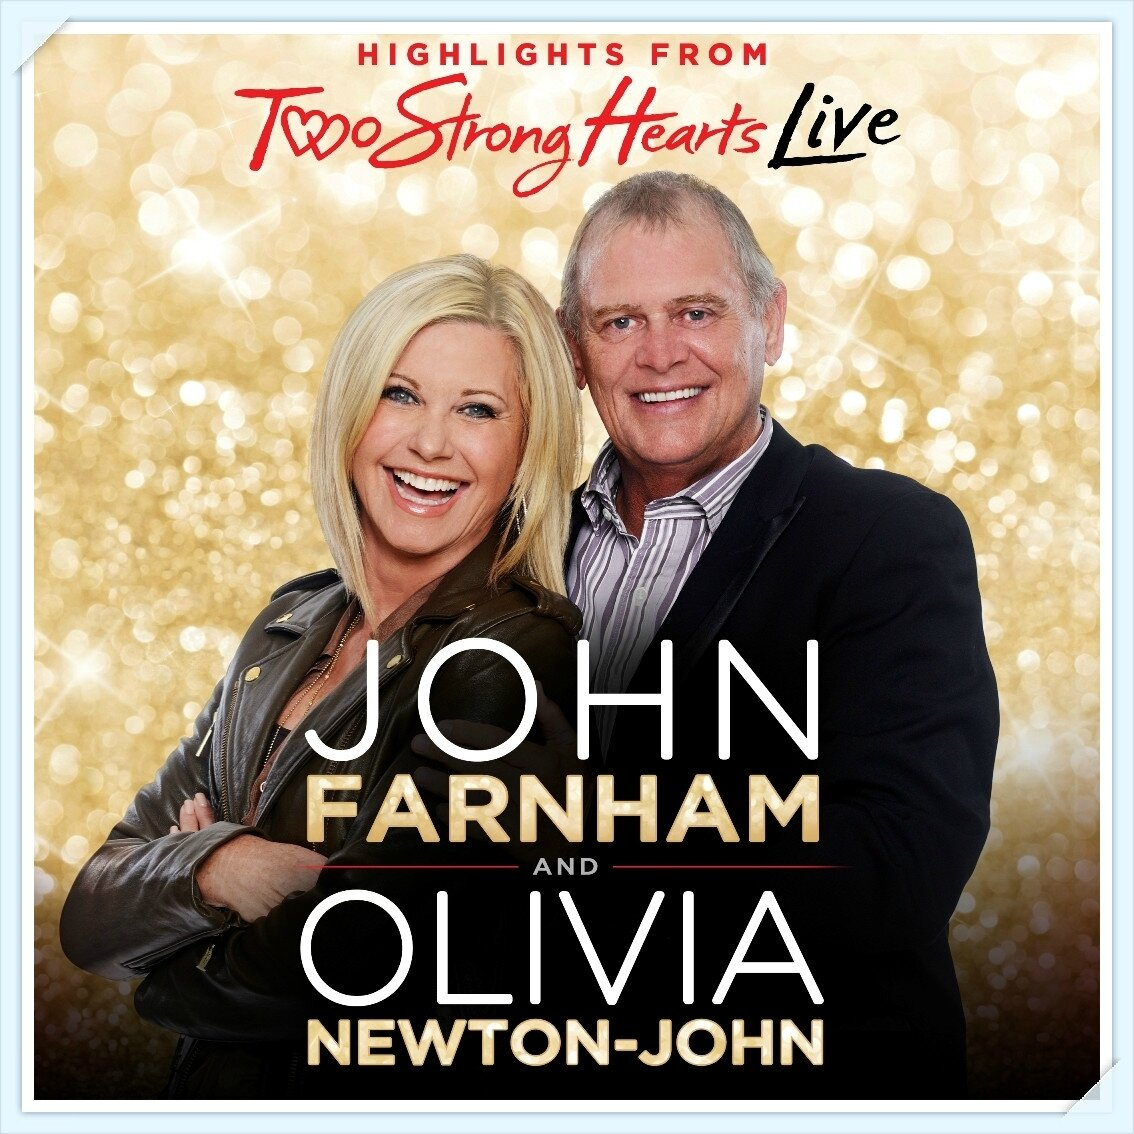 Olivia Newton John and John farnham